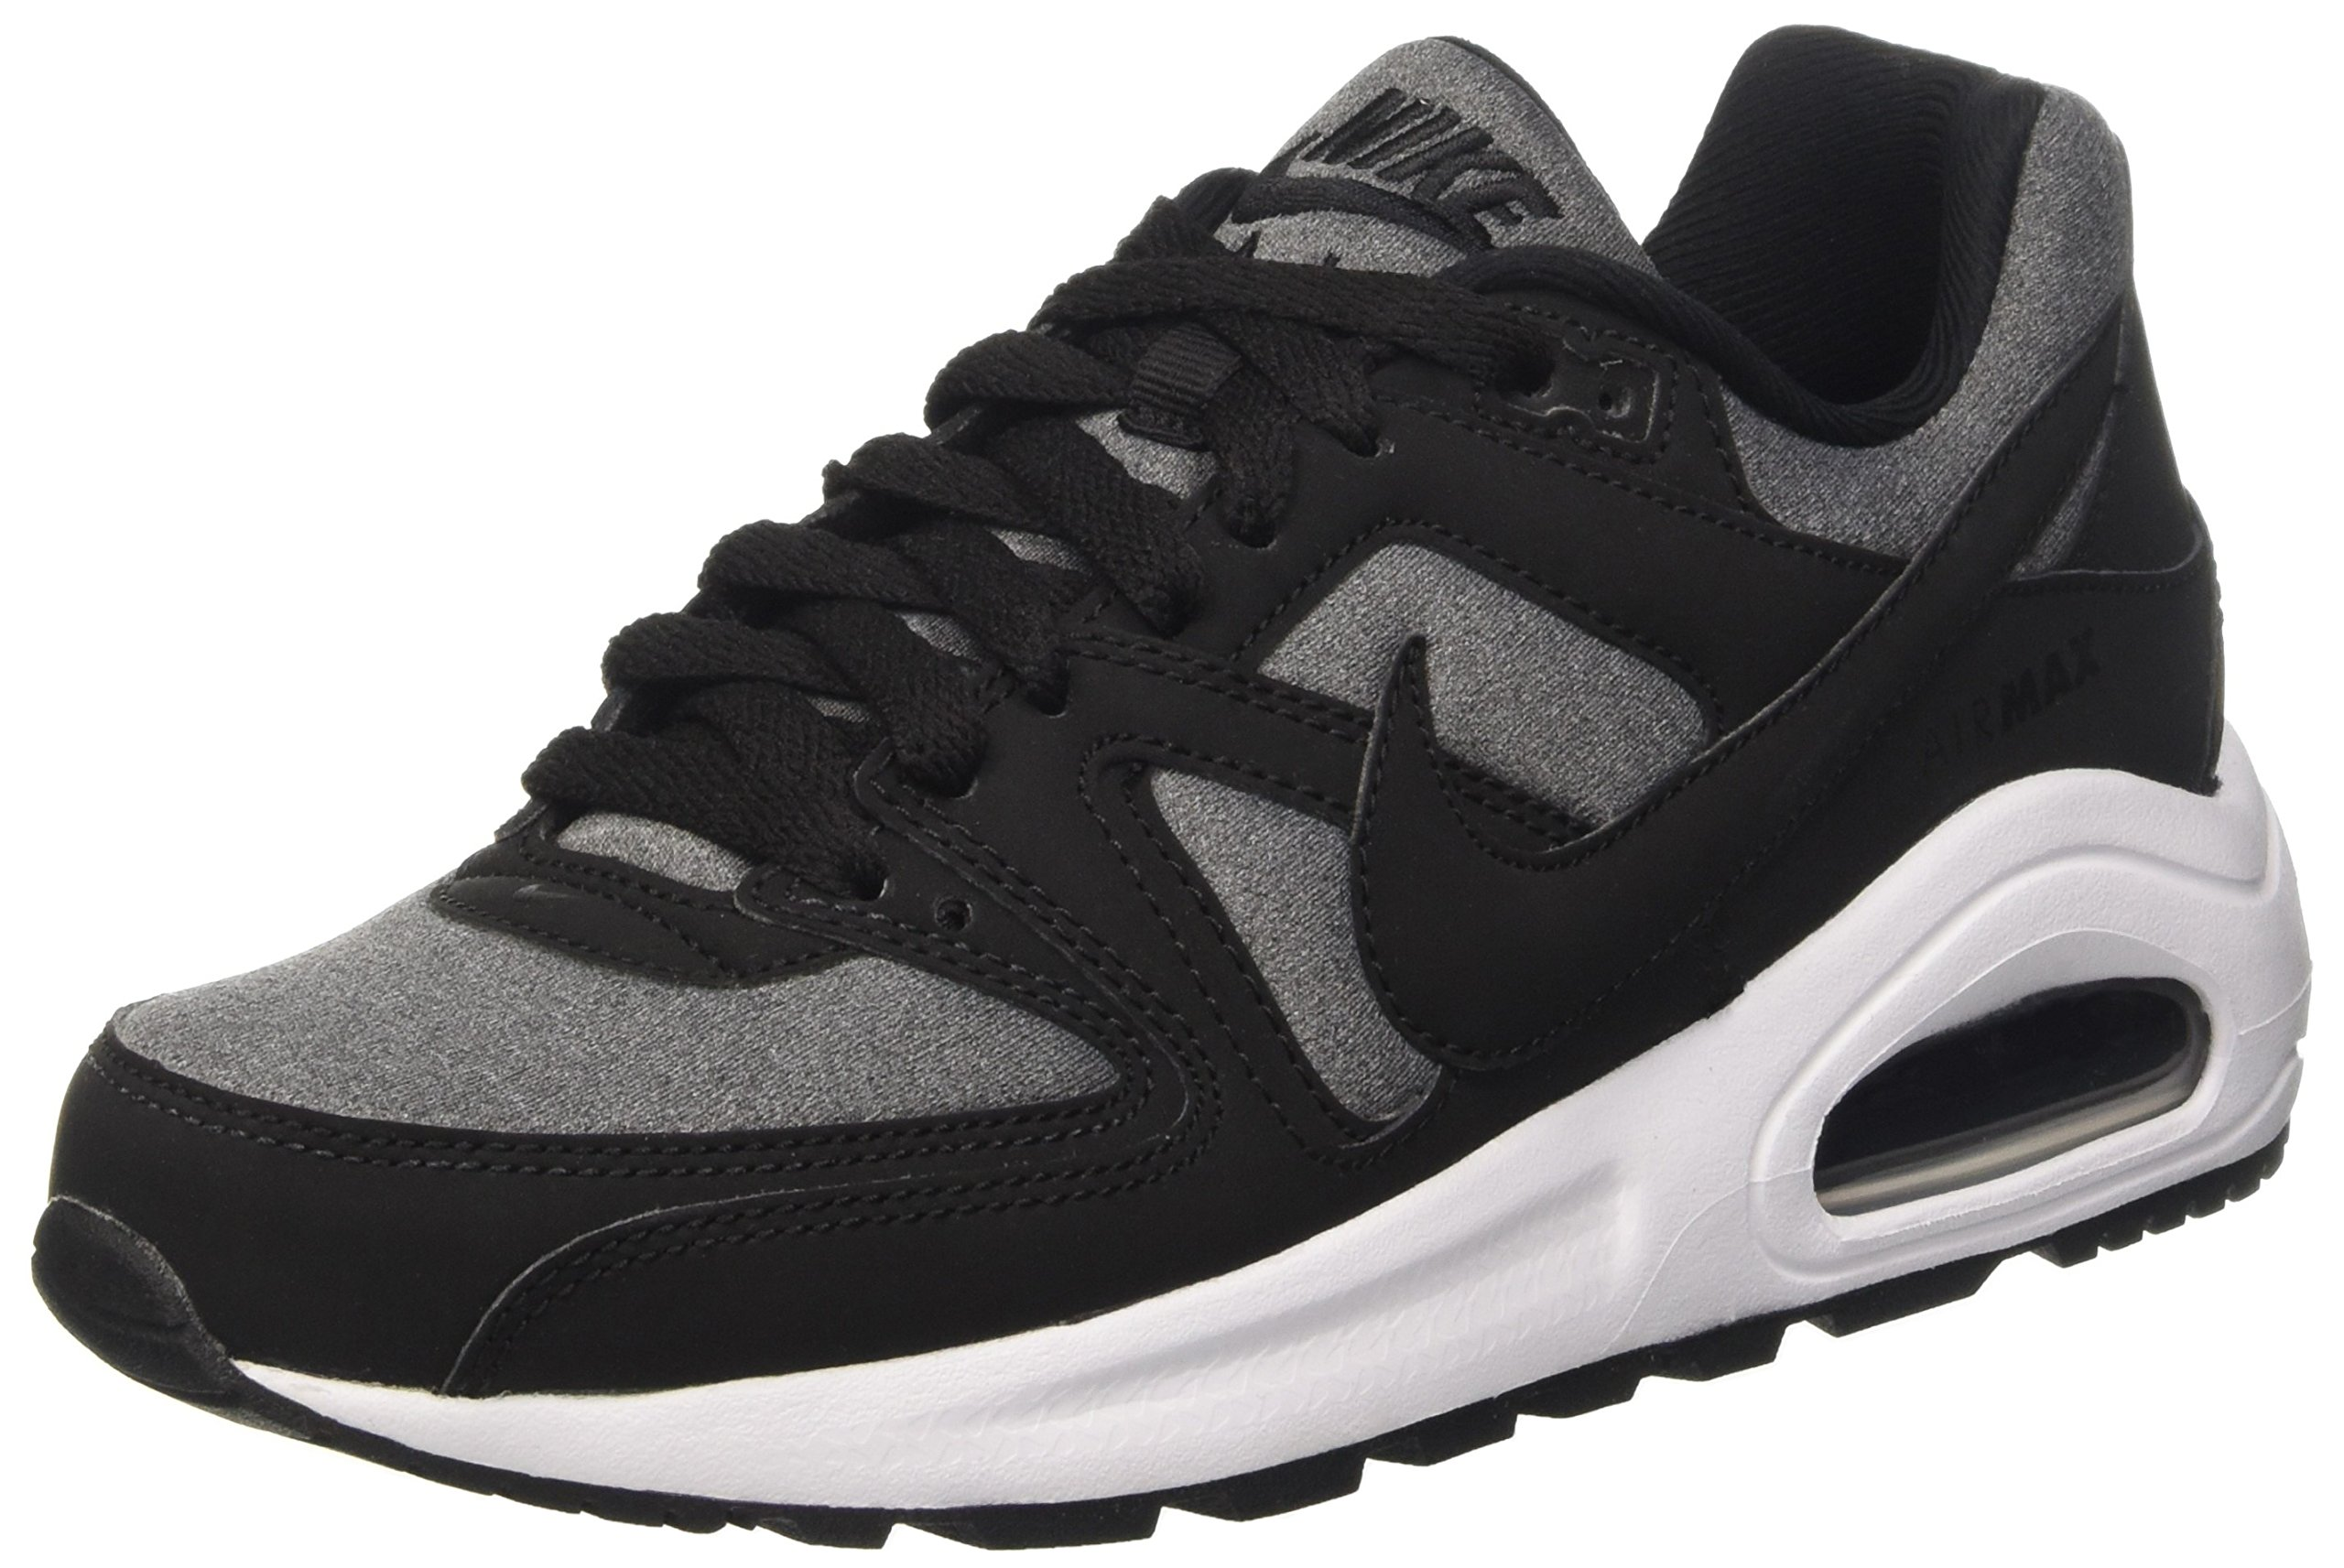 260e1ec828 Galleon - Nike Air Max Command Flex (GS) Running Trainers 844346 Sneakers  Shoes (8, Black White 001)